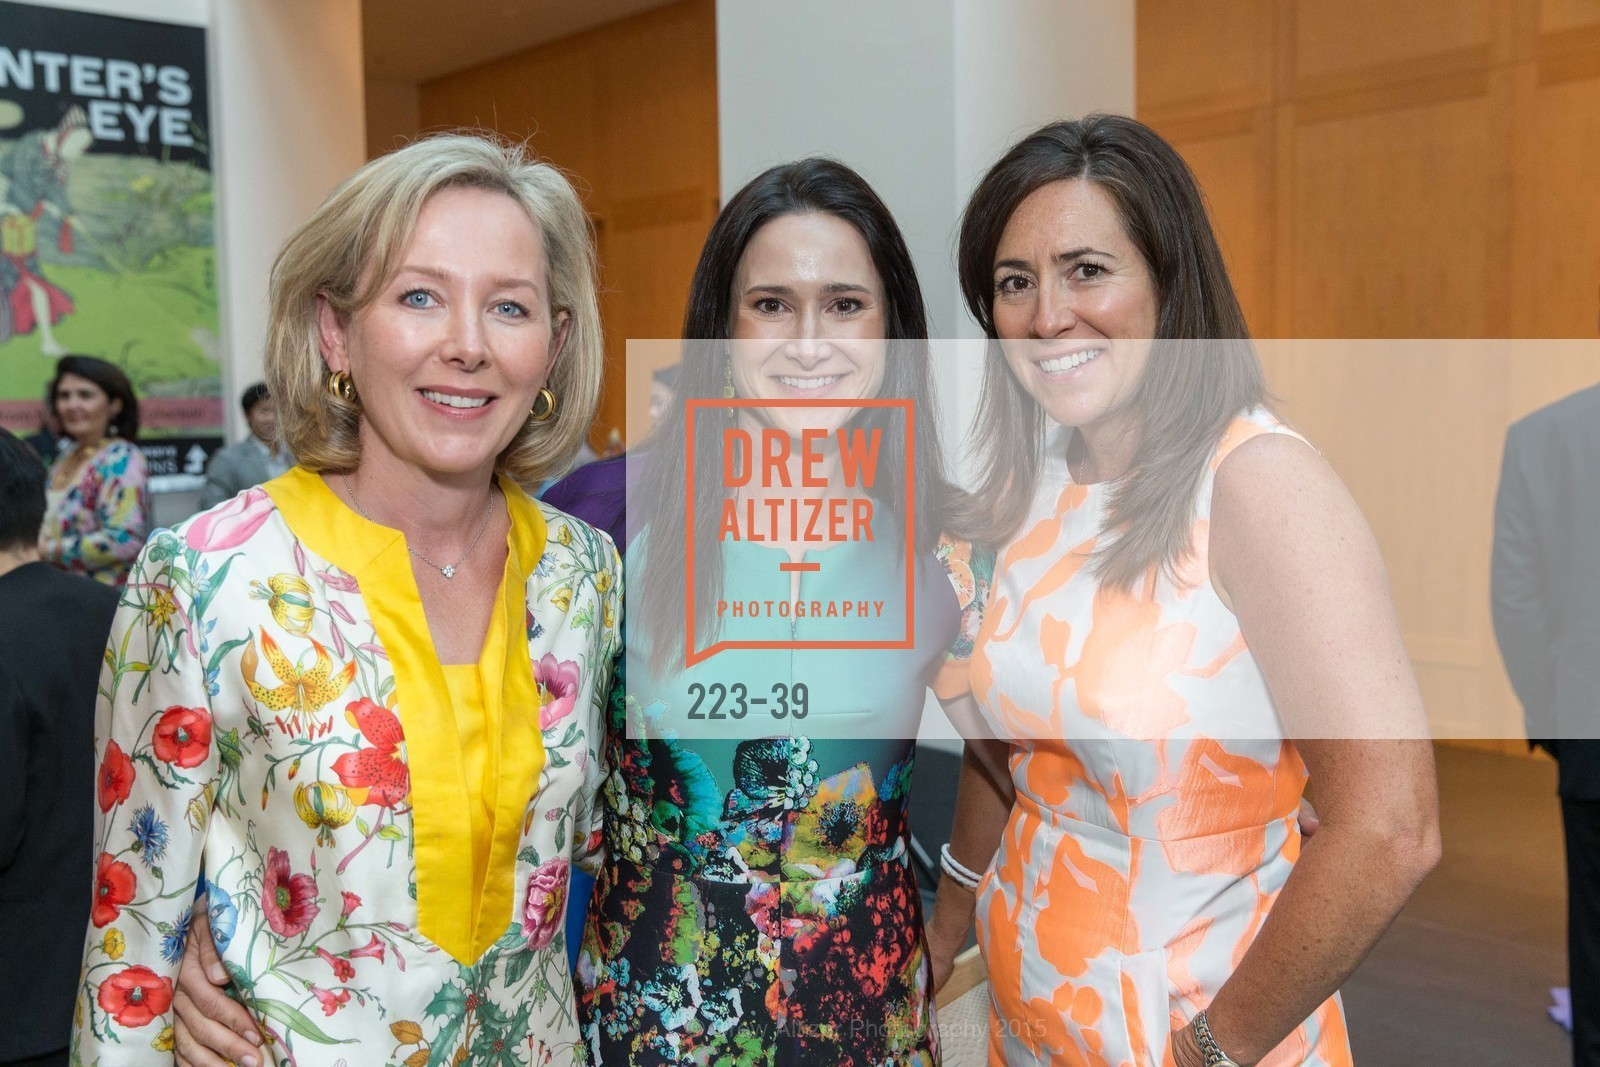 Jennifer Ullyot, Liz Kahn, Kelly Scandalios, ASIAN ART MUSEUM Presents Once Upon a Time in Tokyo, Asian Art Museum. 200 Larkin St., San Francisco, April 17th, 2015,Drew Altizer, Drew Altizer Photography, full-service agency, private events, San Francisco photographer, photographer california